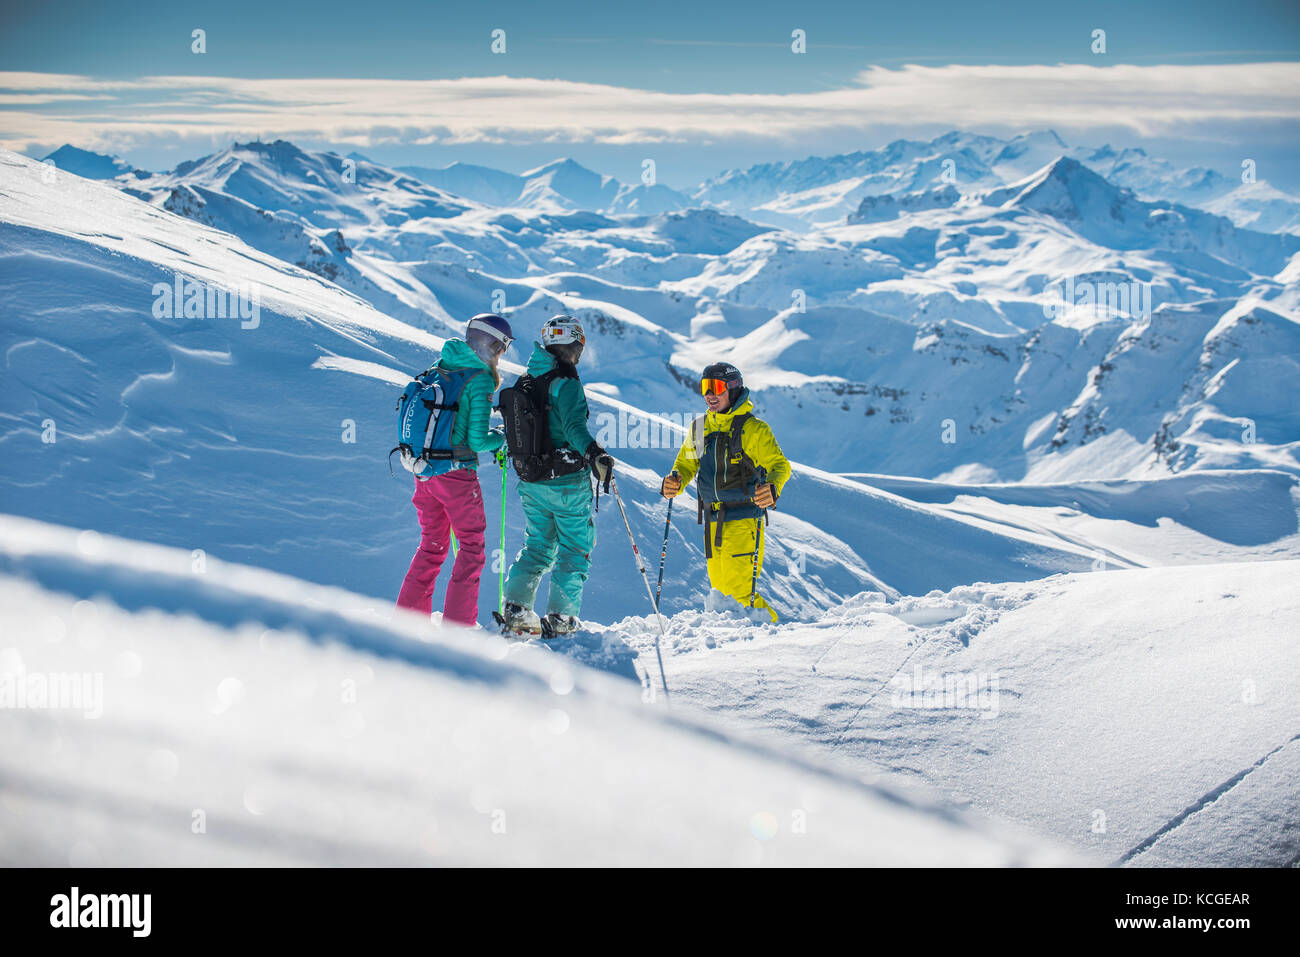 A ski instructor guides two women off piste in the French ski resort of Courchevel. - Stock Image